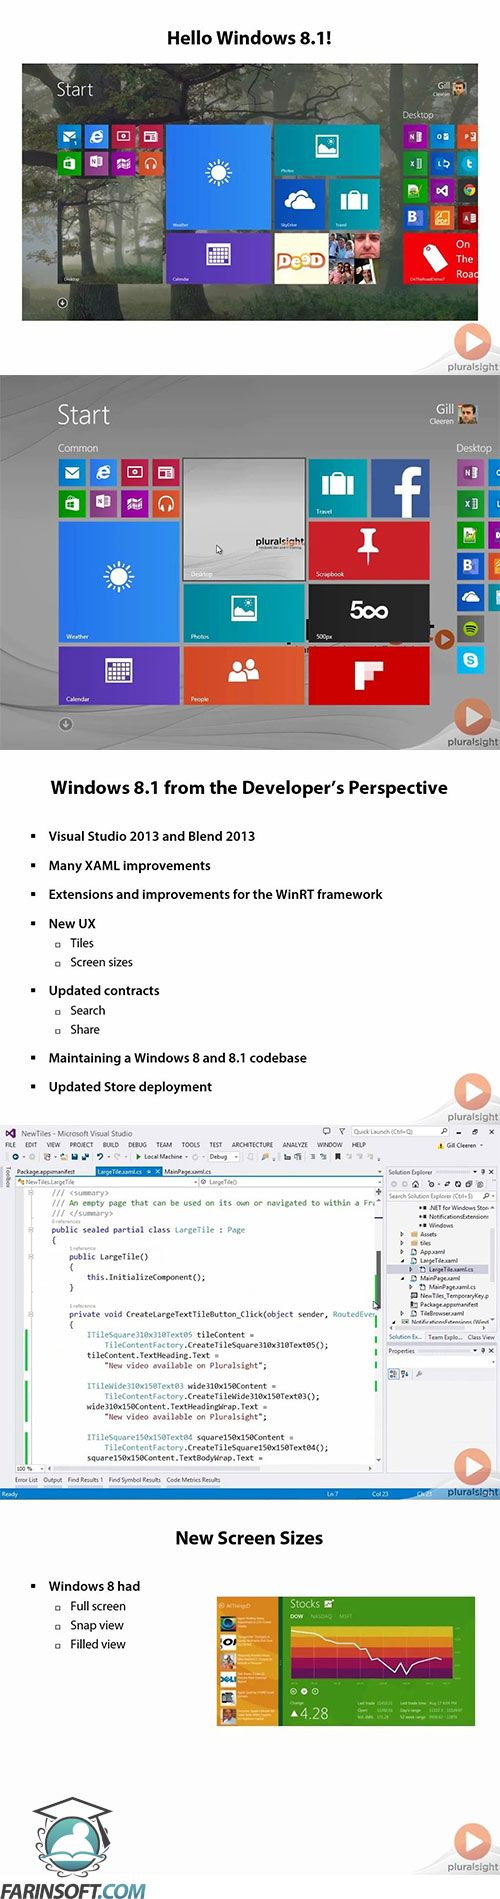 Windows-8.1-New-features-for-Csharp-XAML-Developers